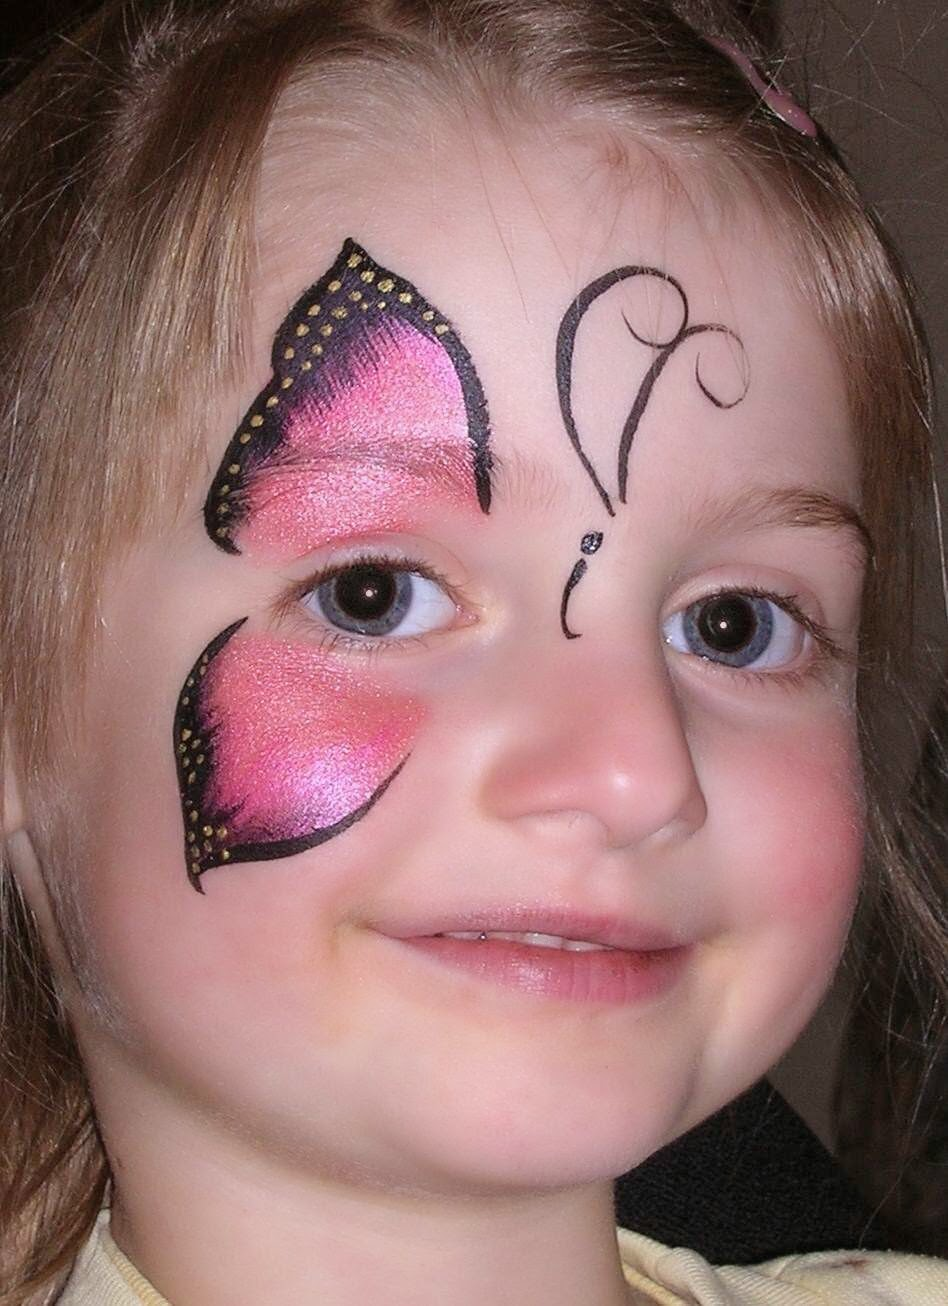 Body Painting Tattoo: Face Painting Ideas for Kids ...